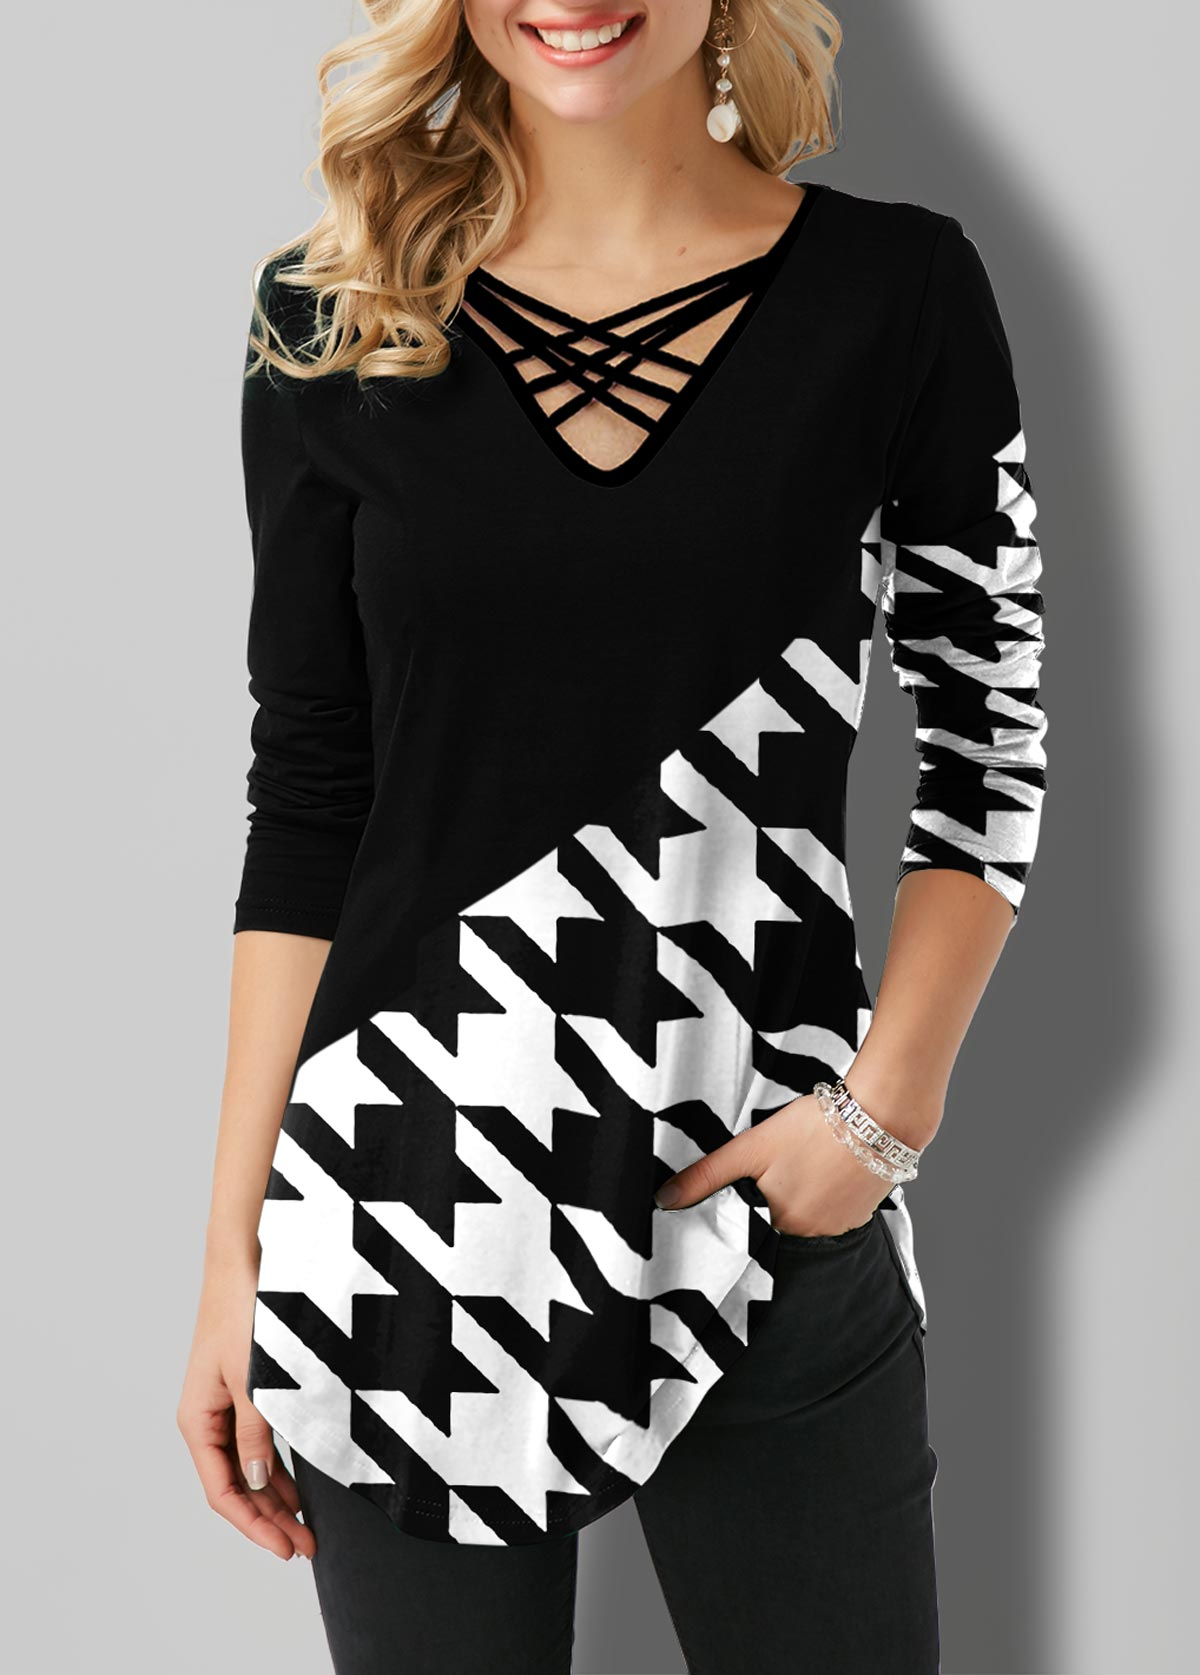 Houndstooth Print Contrast Strappy Neck T Shirt